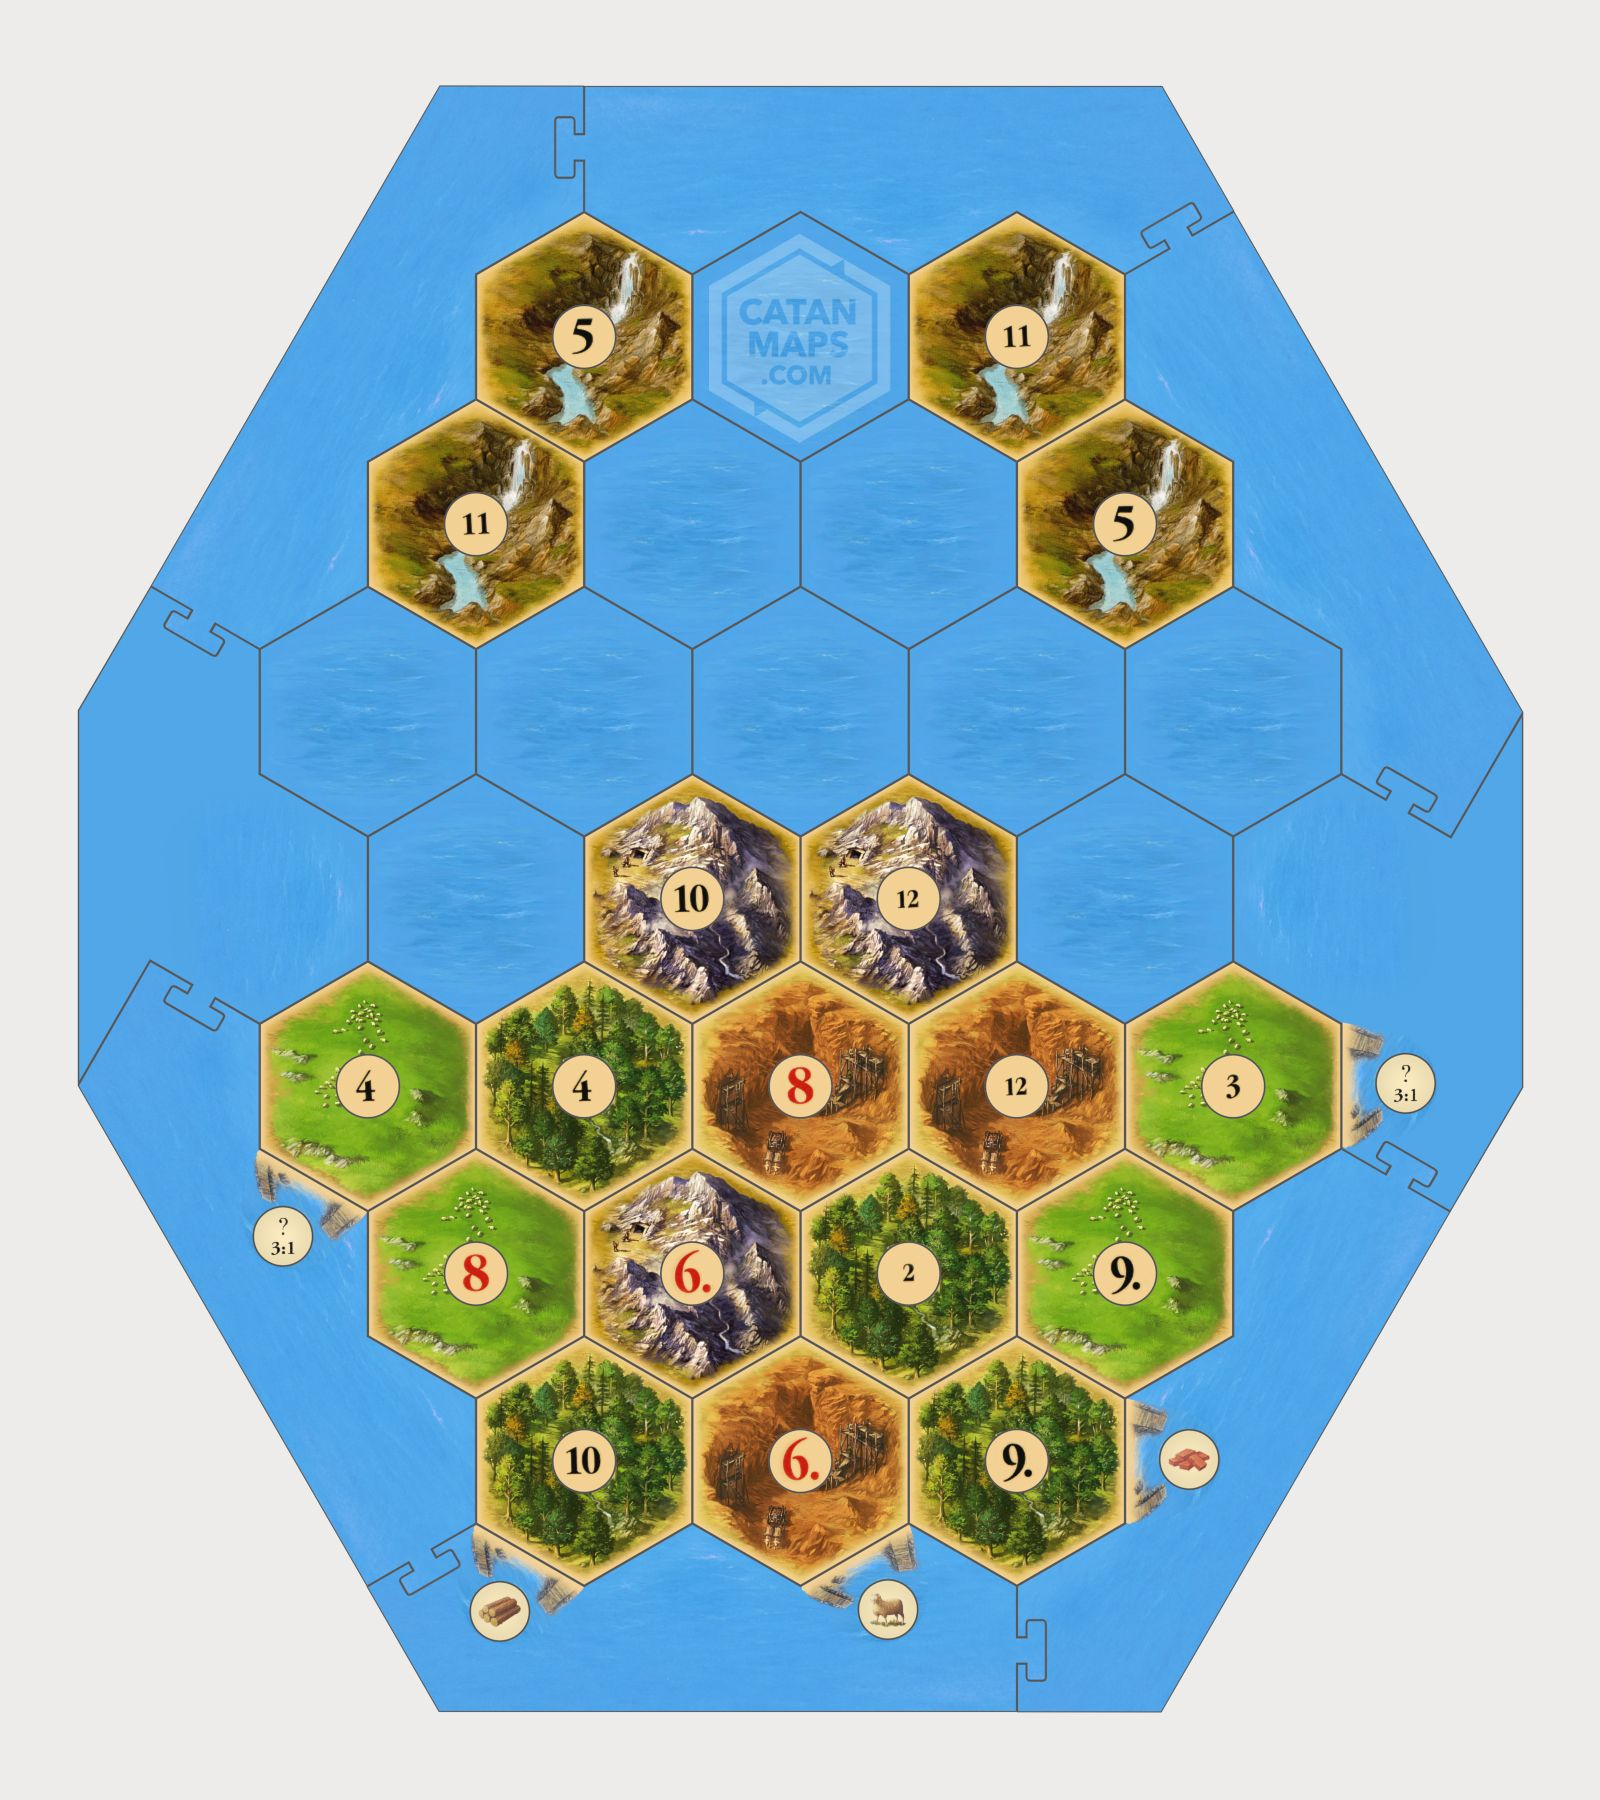 The Search for Wheat Bluehost, Settlers of catan